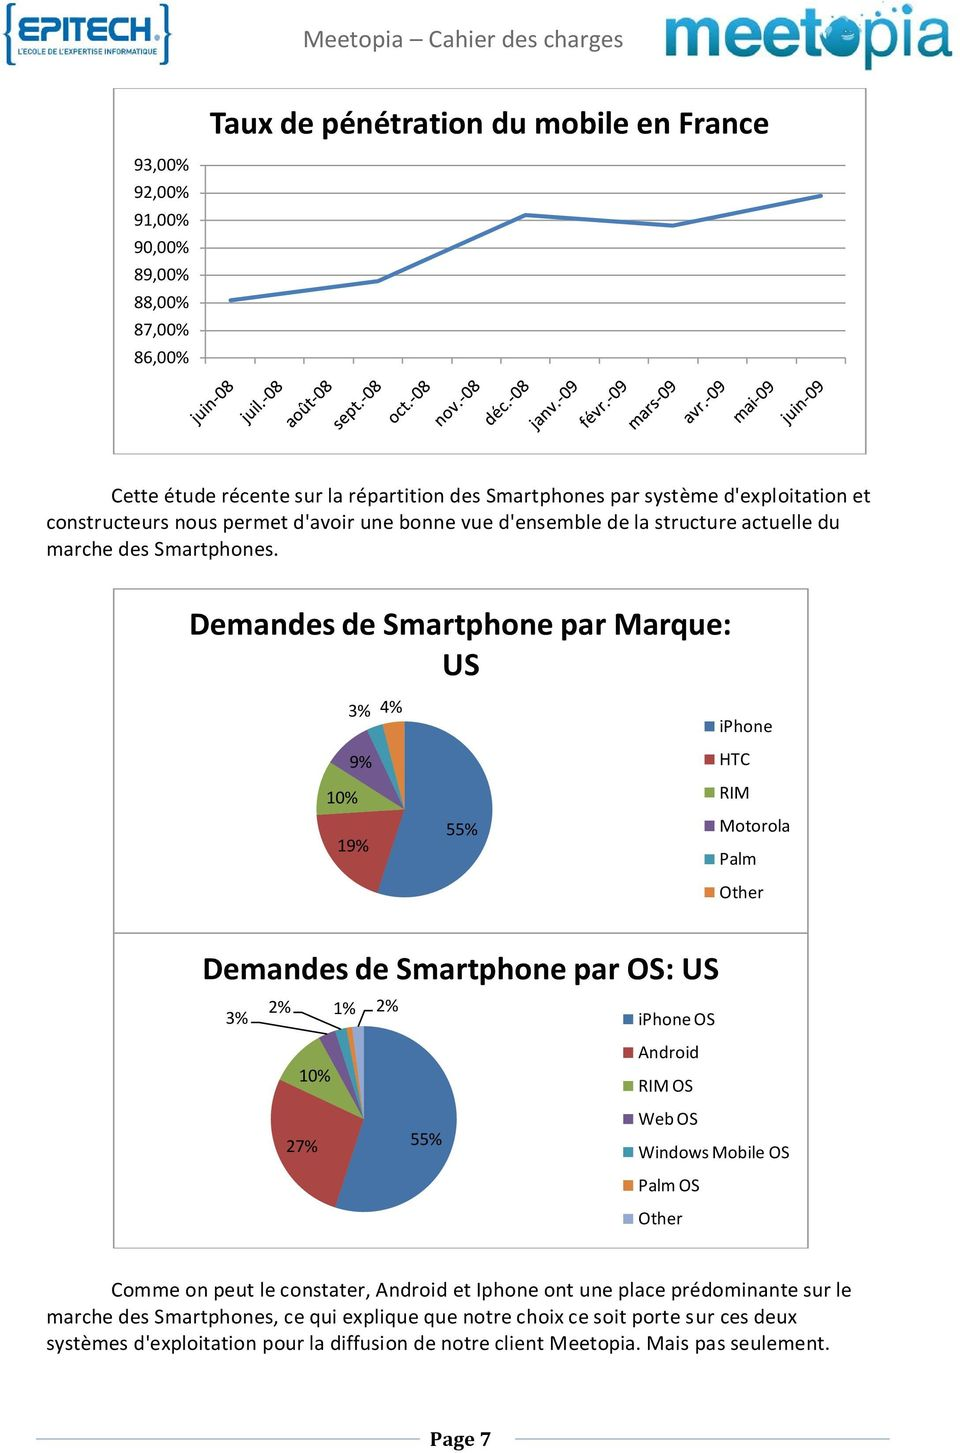 Demandes de Smartphone par Marque: US 3% 4% 9% 10% 19% 55% iphone HTC RIM Motorola Palm Other Demandes de Smartphone par OS: US 3% 2% 1% 2% iphone OS 10% 27% 55% Android RIM OS Web OS Windows